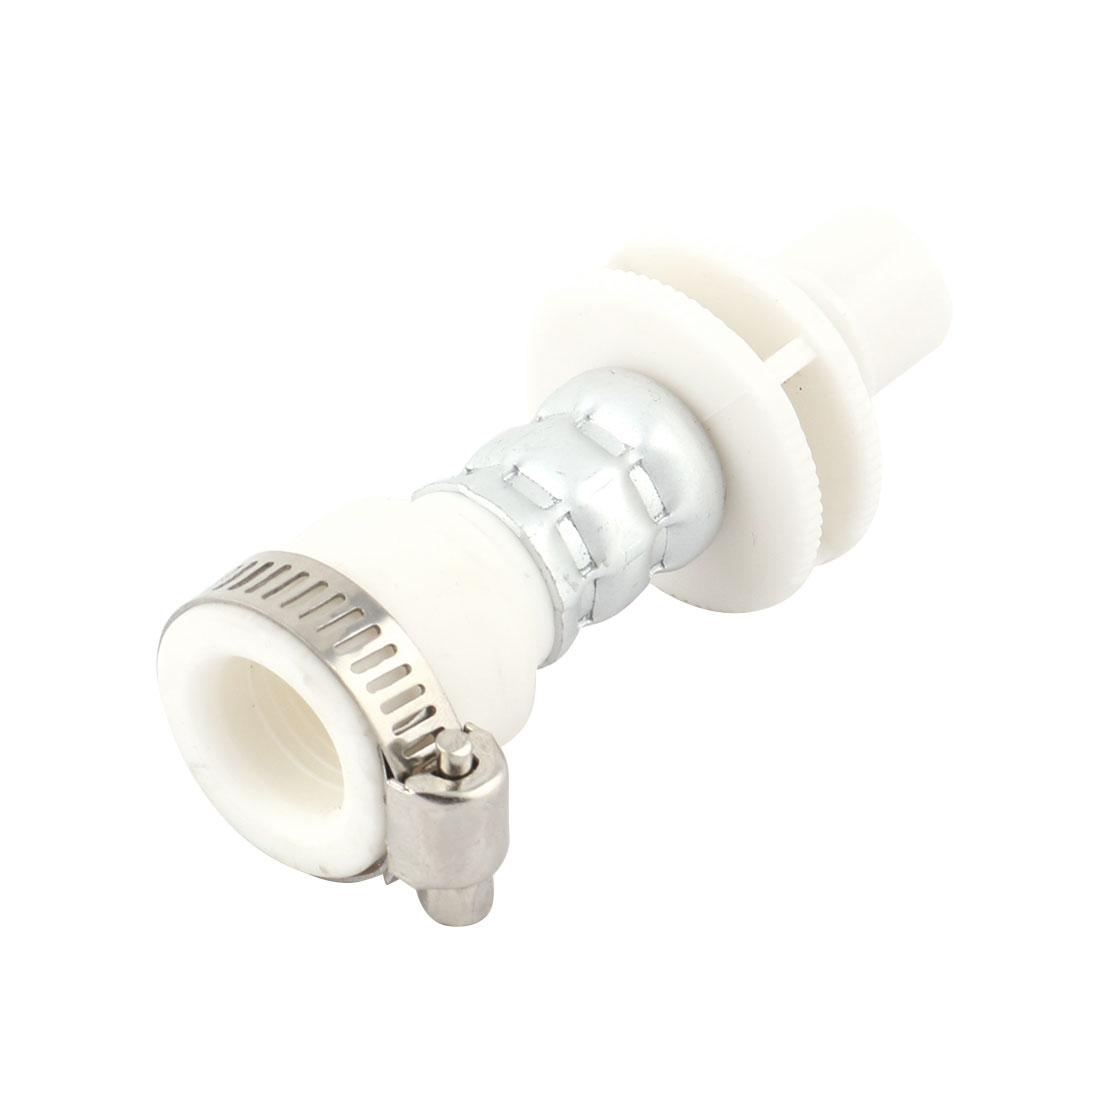 Washing Machine Washer Tap Pipe Faucet Waterflow Tube Connector Inlet Adapter